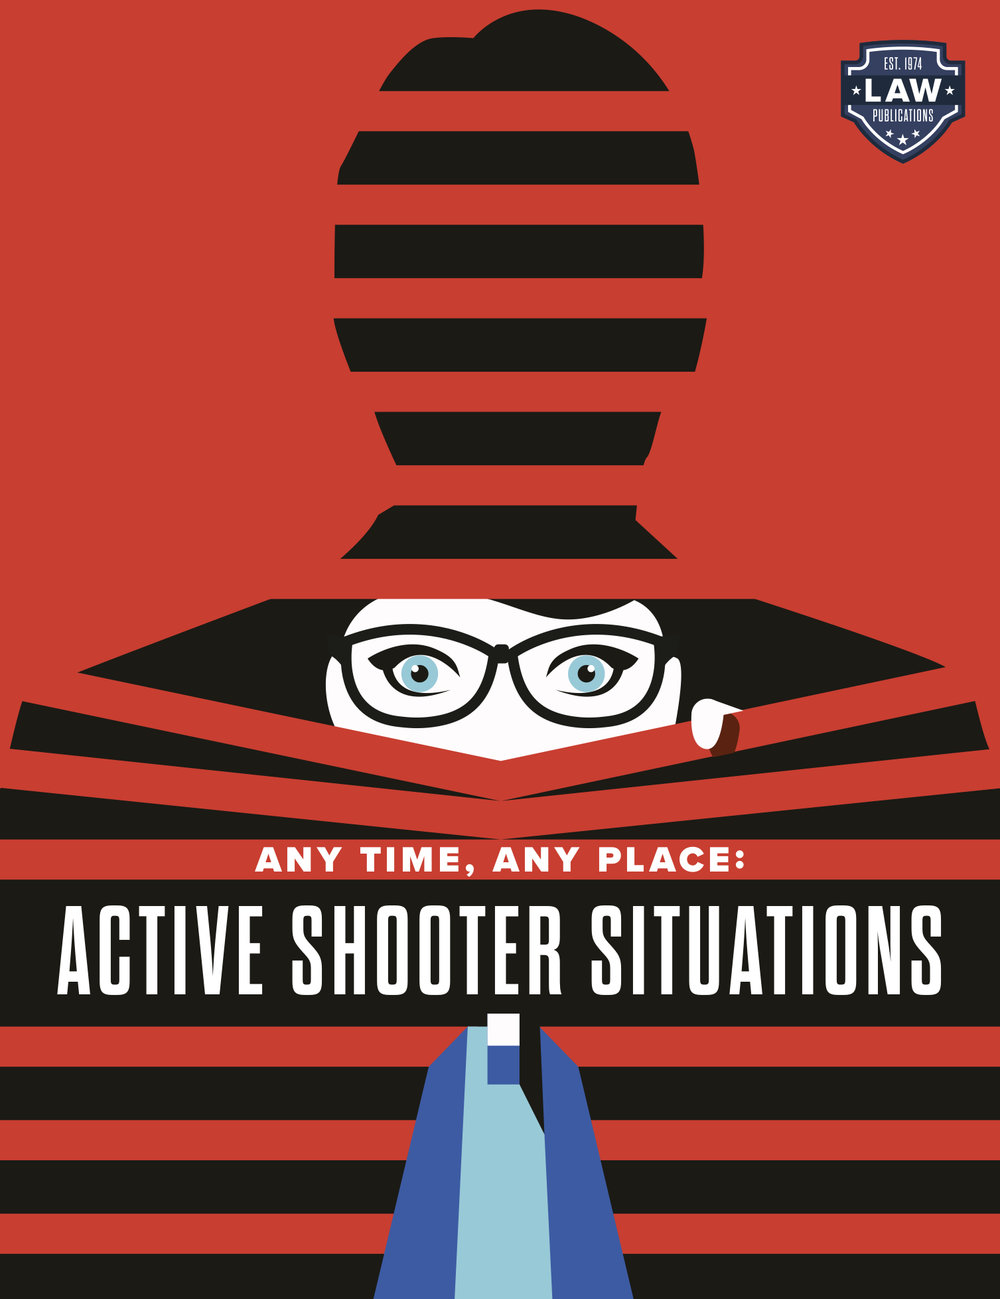 See community support in action! - Click to learn more about our Active Shooter Awareness campaign in Galveston, TX